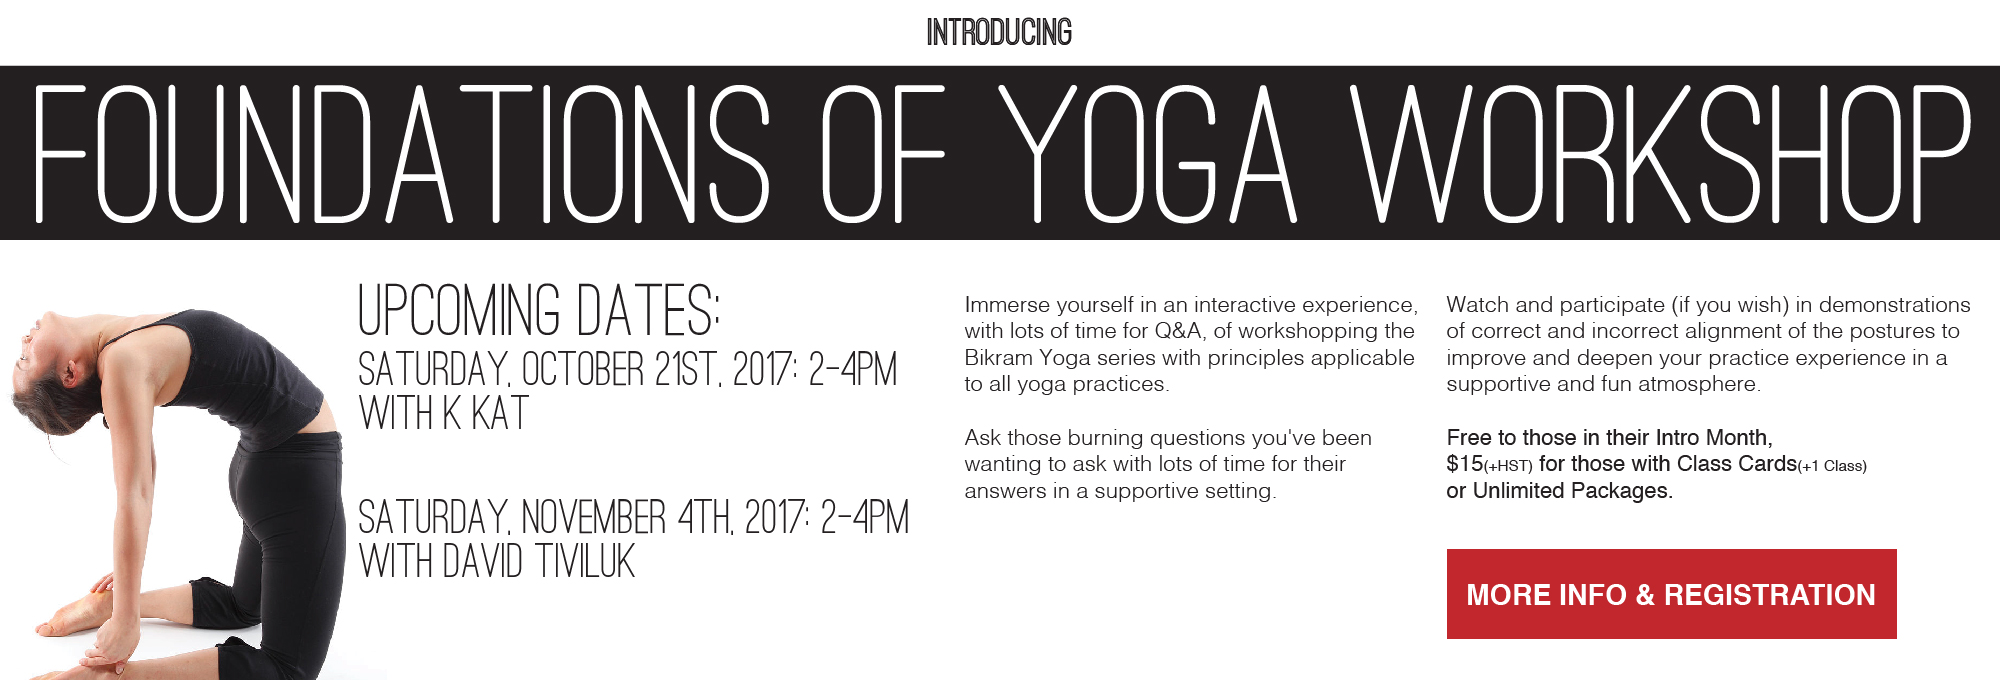 foundations-of-yoga-banner